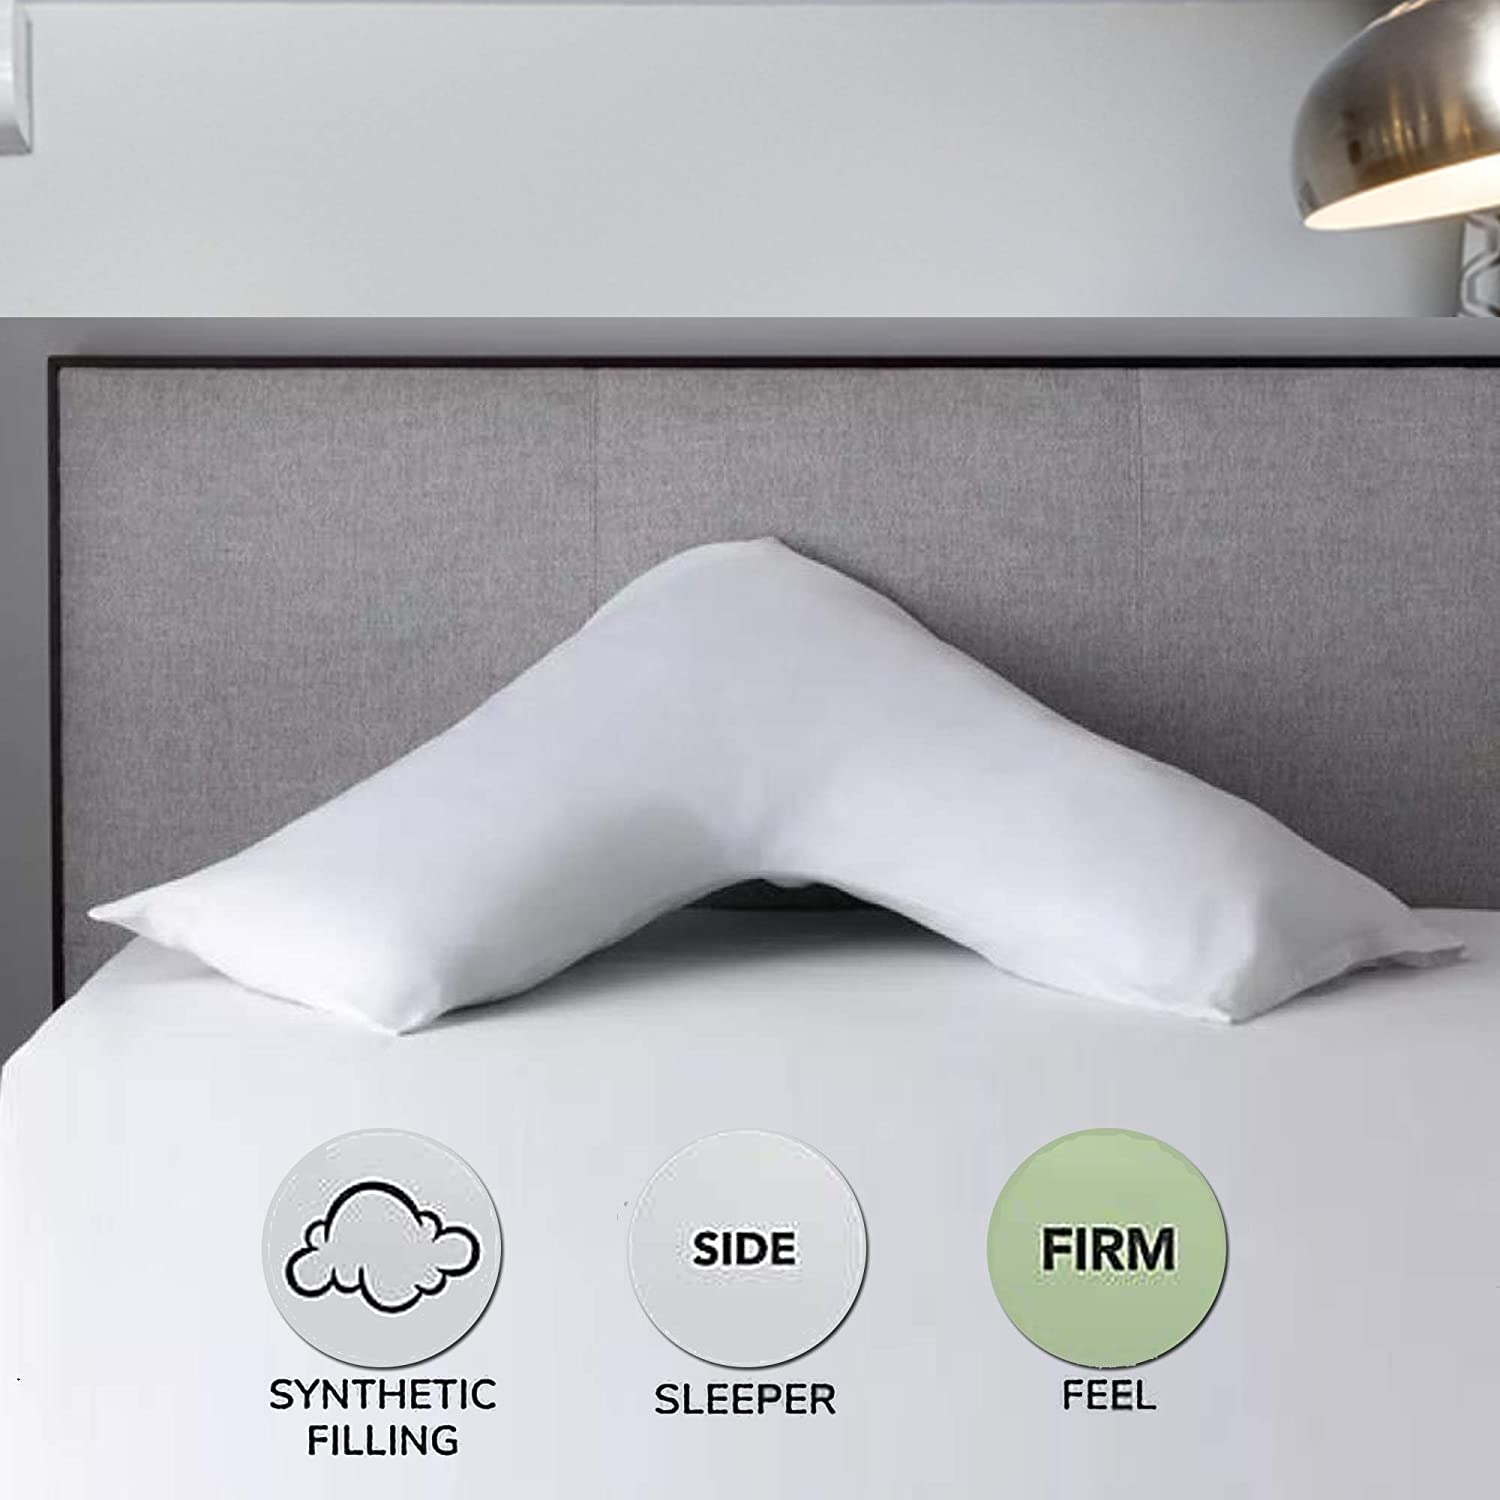 for Firm Support to Head//Neck//Shoulder//Back 75 x 34 inches Virgin Hollow Fibre Filled V Cushion for Everyone Ideal for Body Support in Pregnancy//Maternity//Nursing East Gate Orthopedic V Pillow